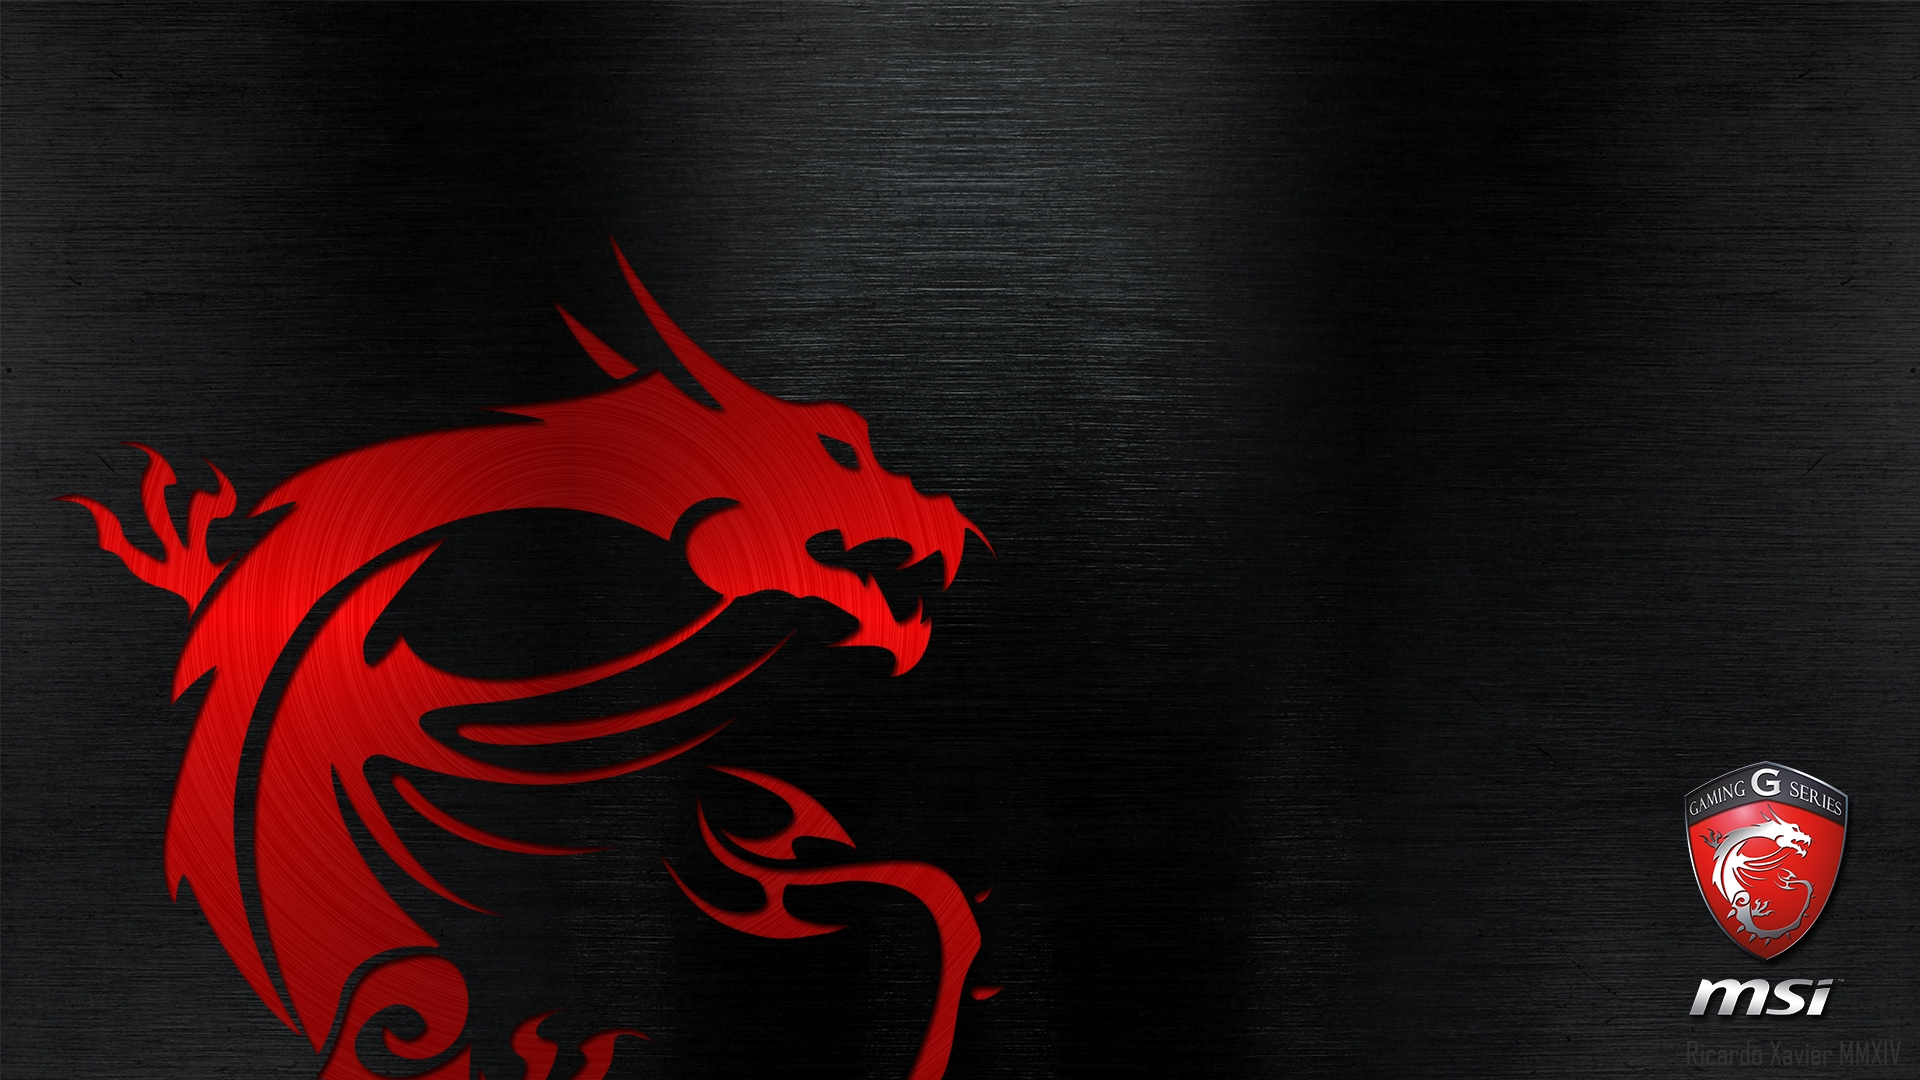 10 New Msi Gaming Series Wallpaper FULL HD 1920×1080 For PC Desktop